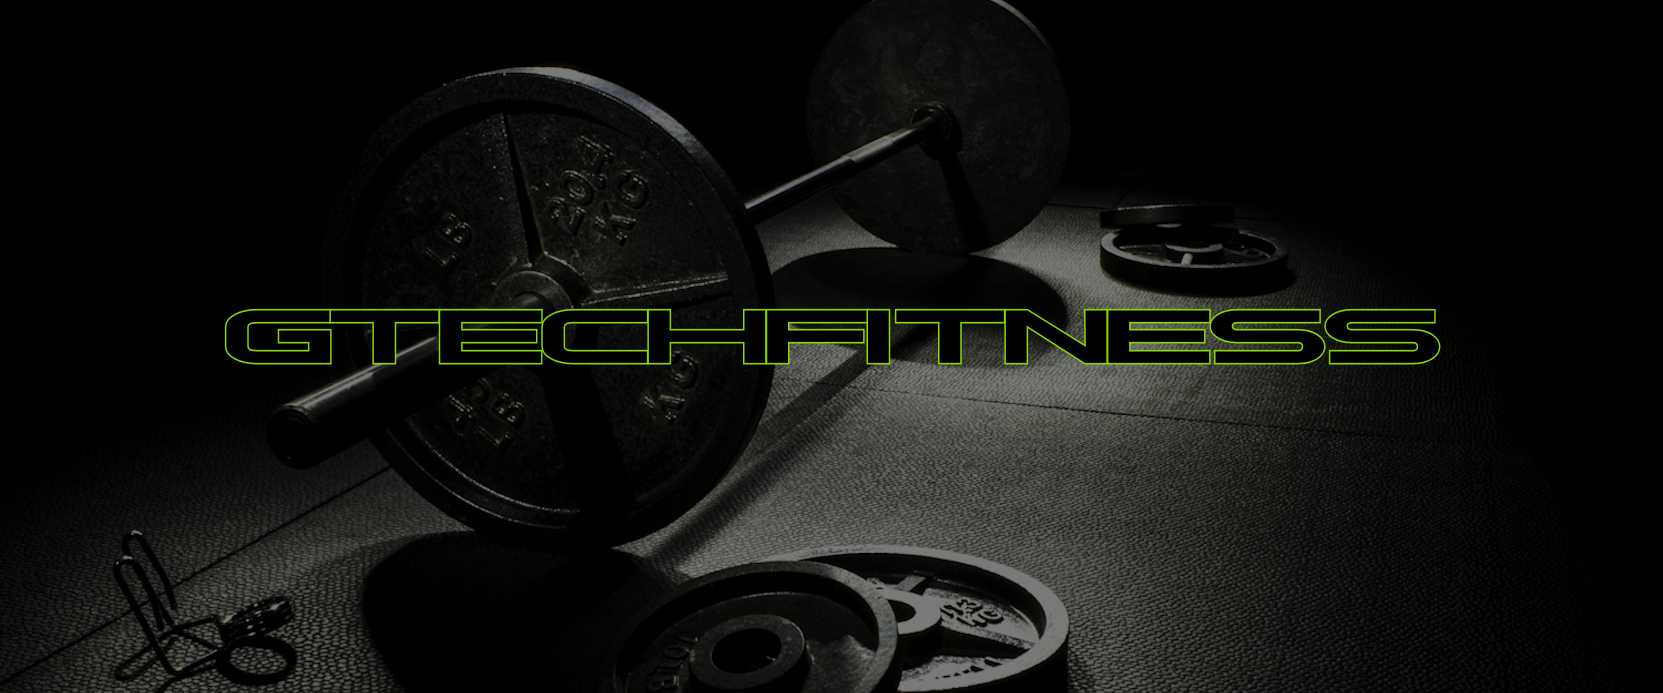 Gtech Fitness Home & Commercial Fitness Equipment